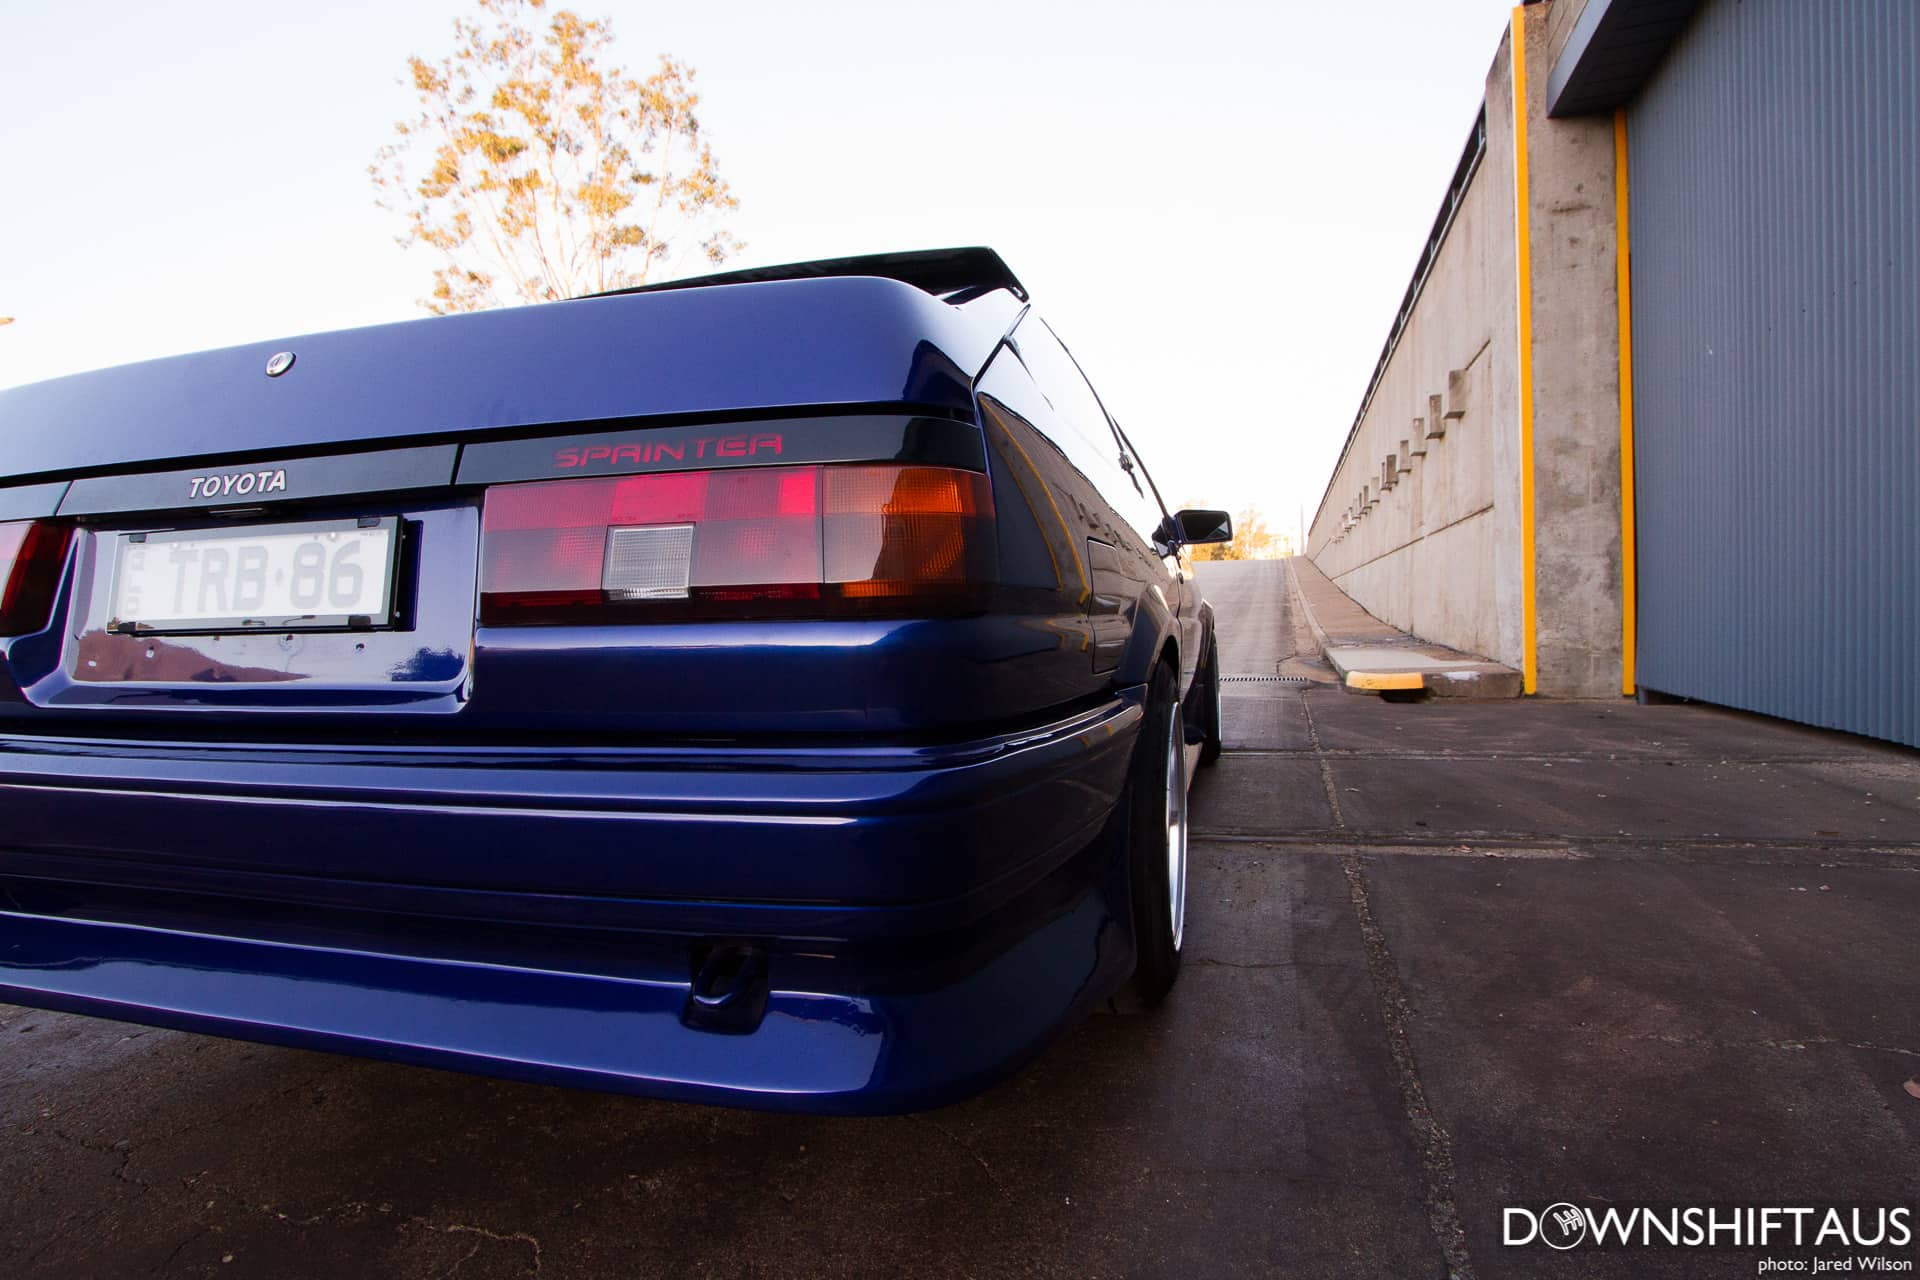 Aaron's TRB86 AE86 | Downshift